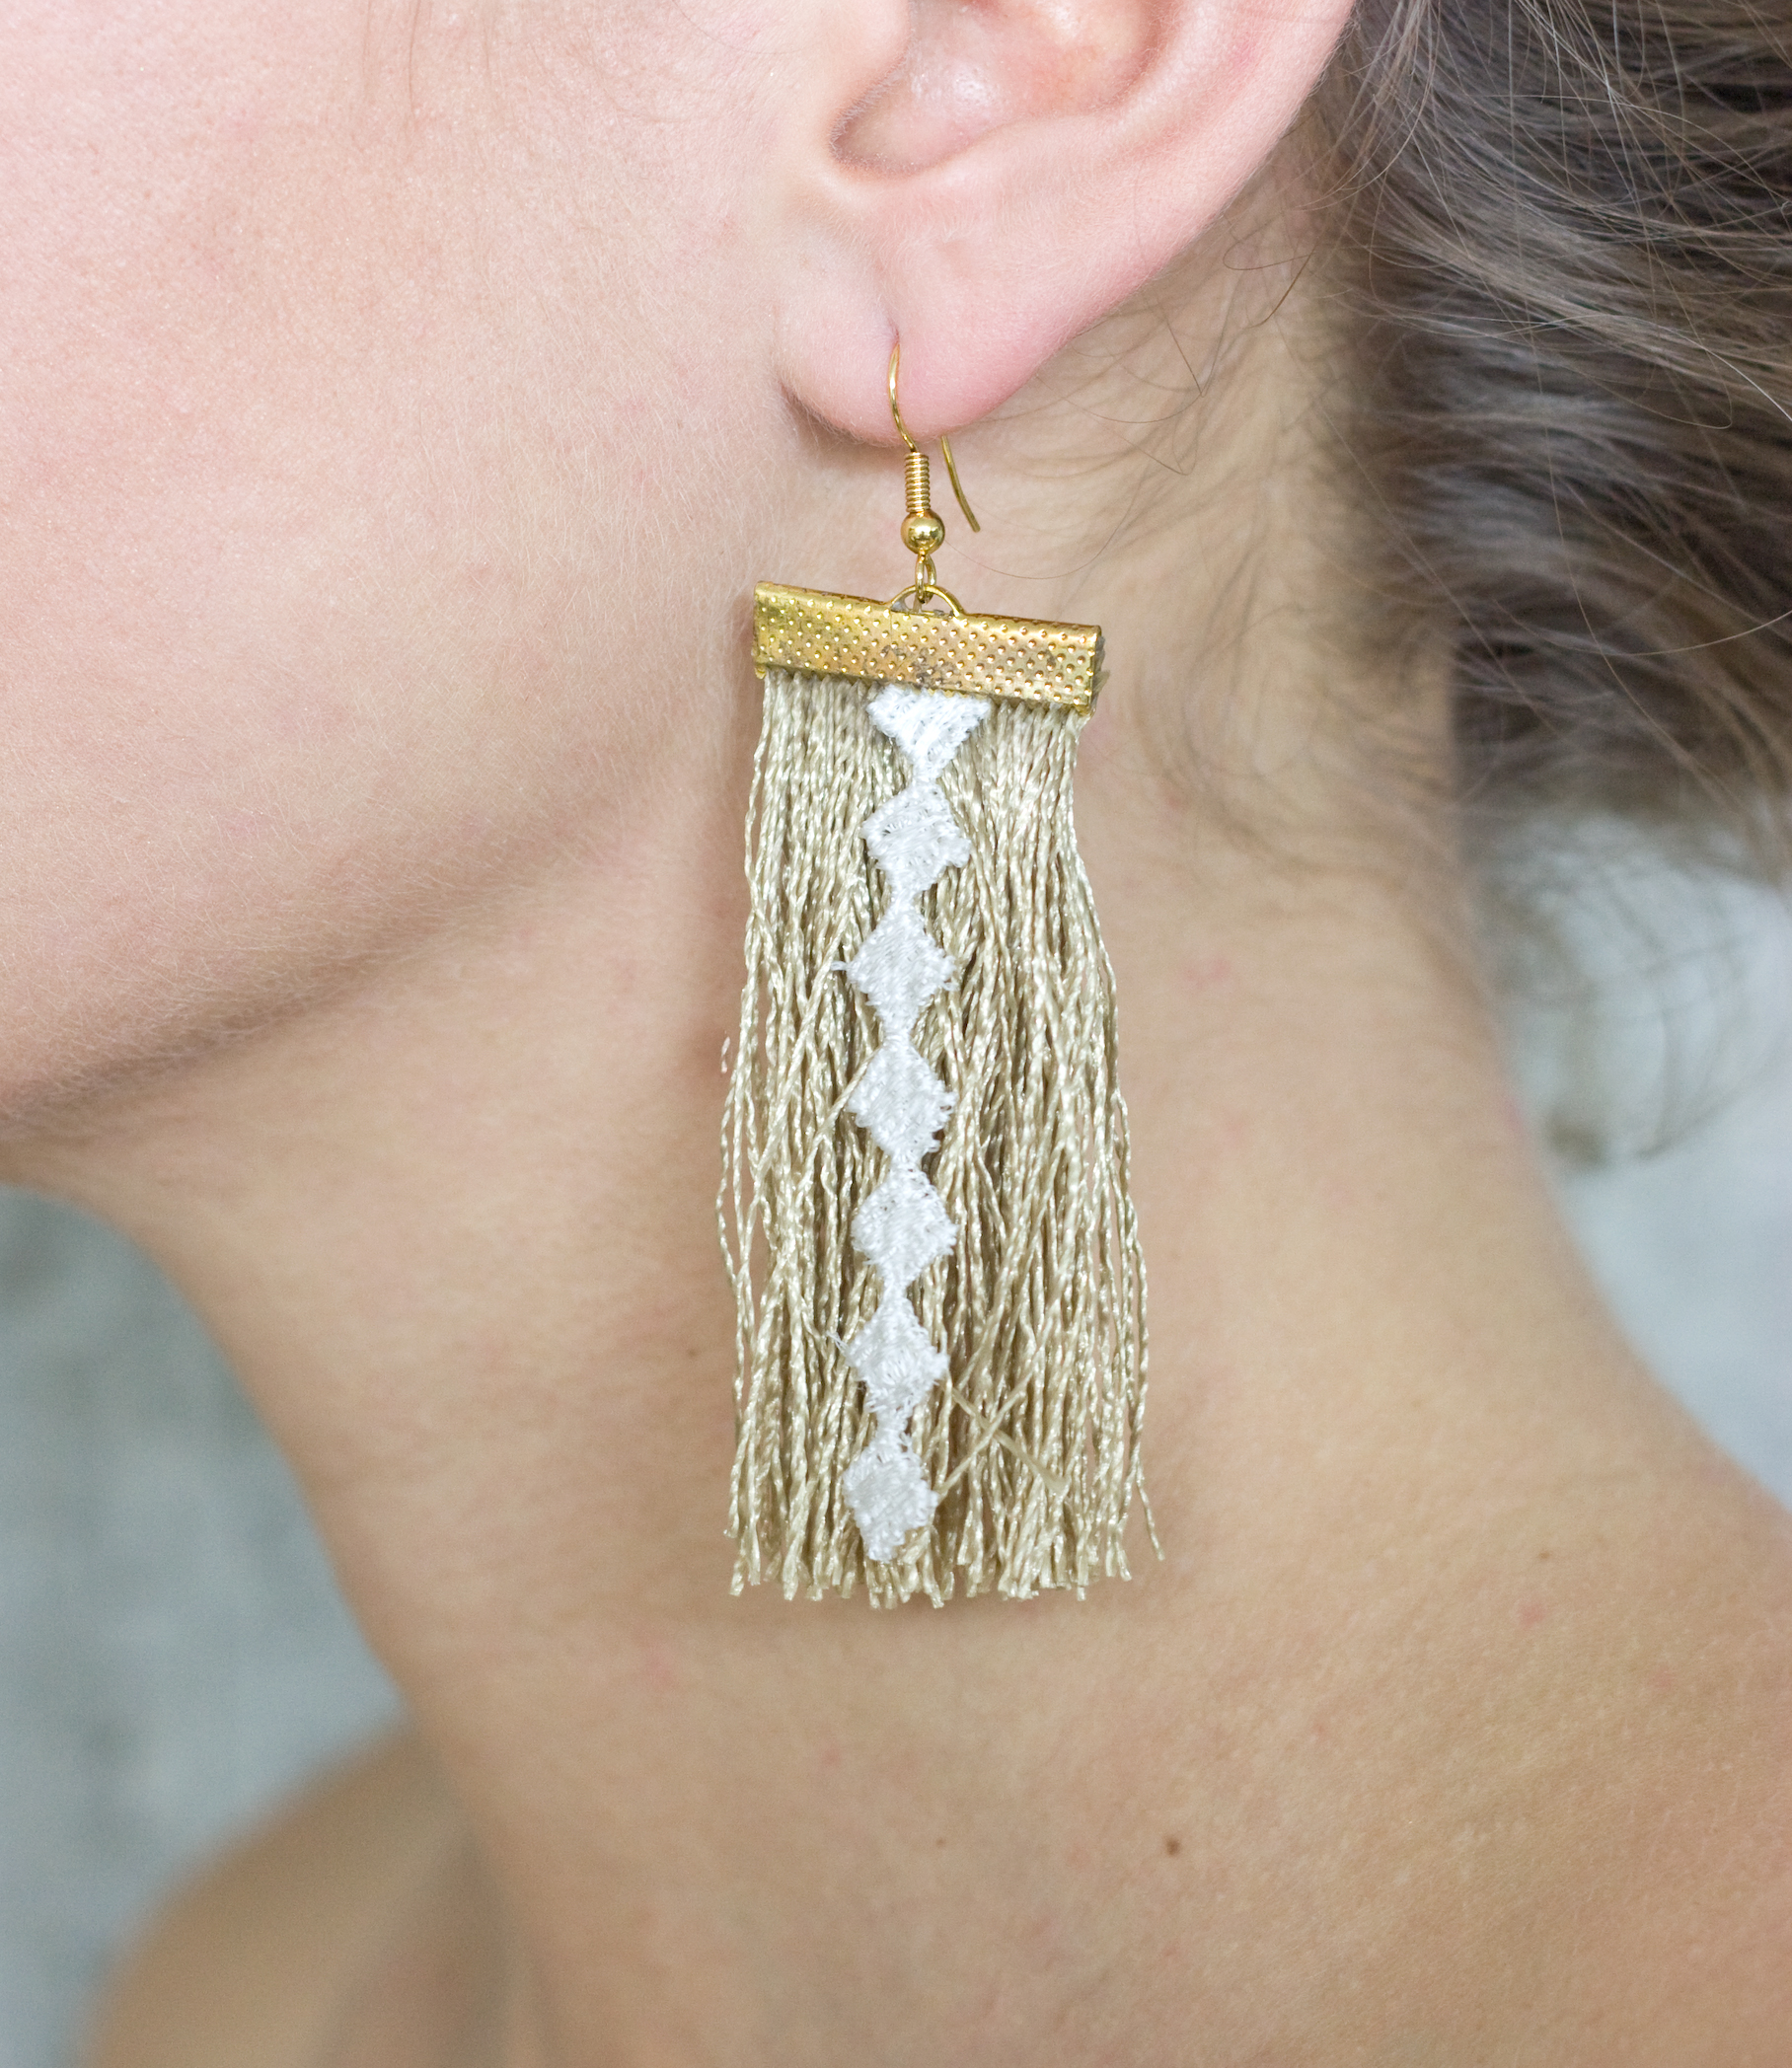 Thatching earrings (SOLD OUT)